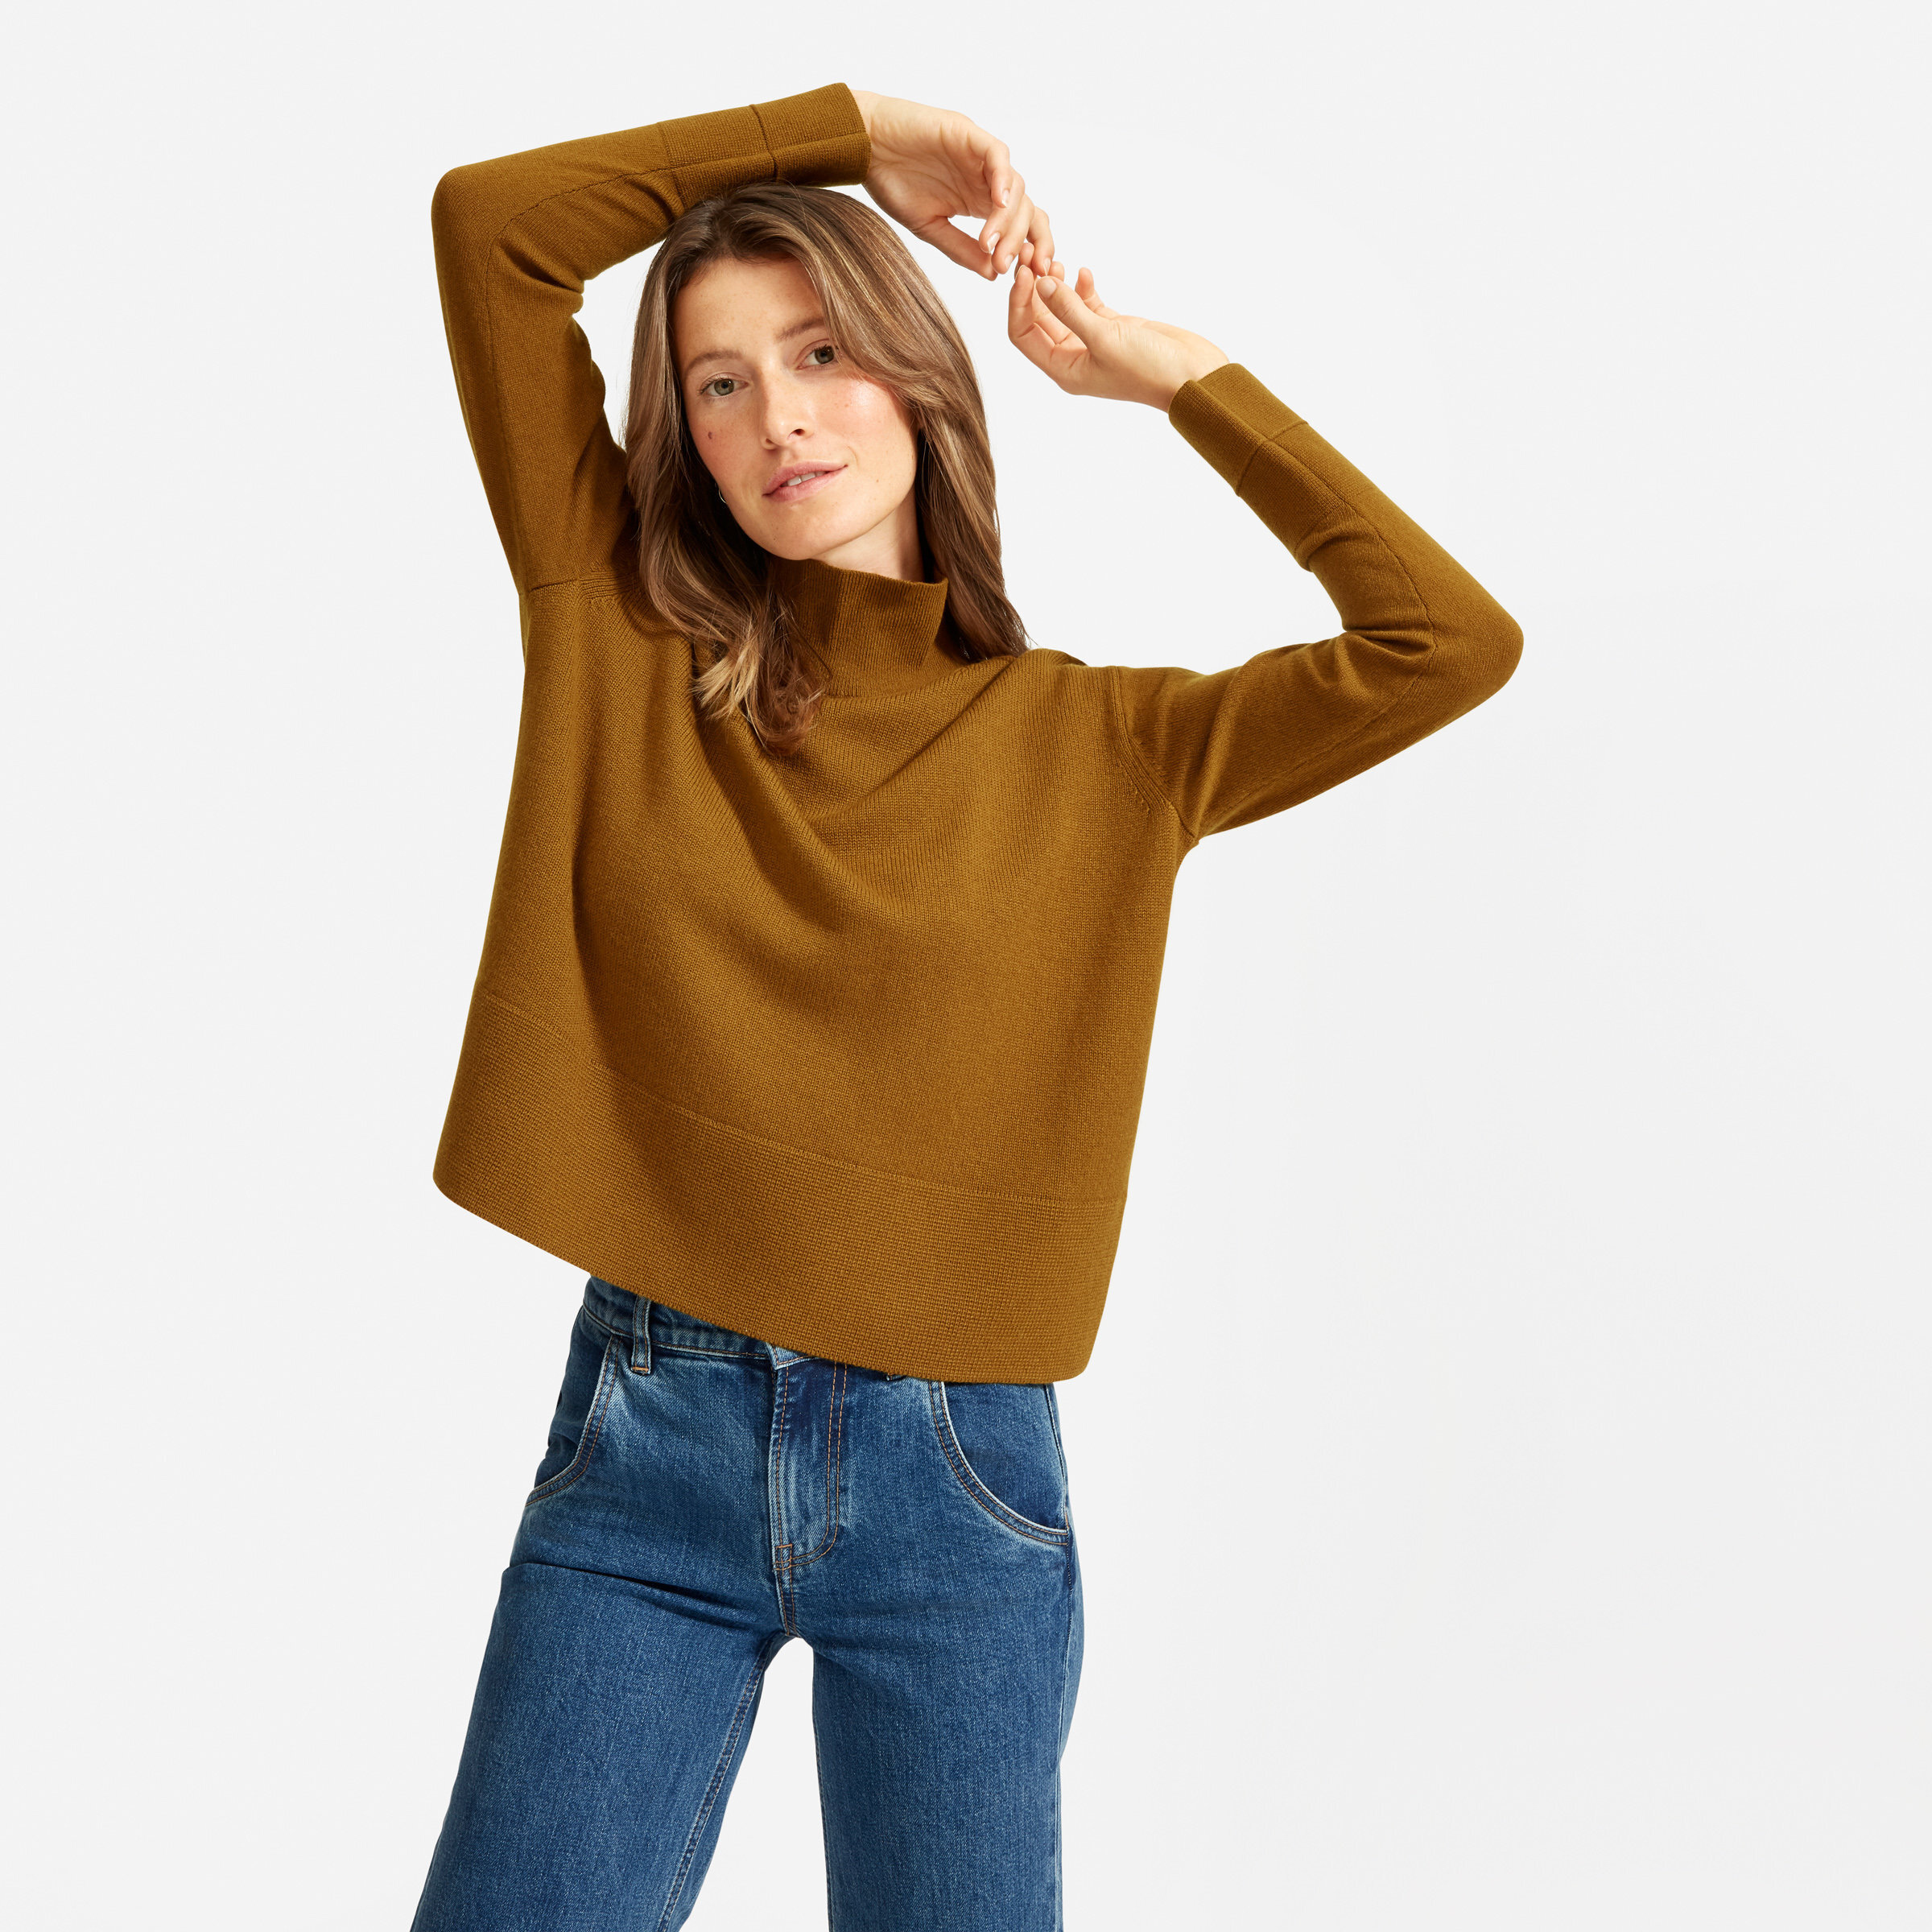 The Cashmere Square Turtleneck — $165